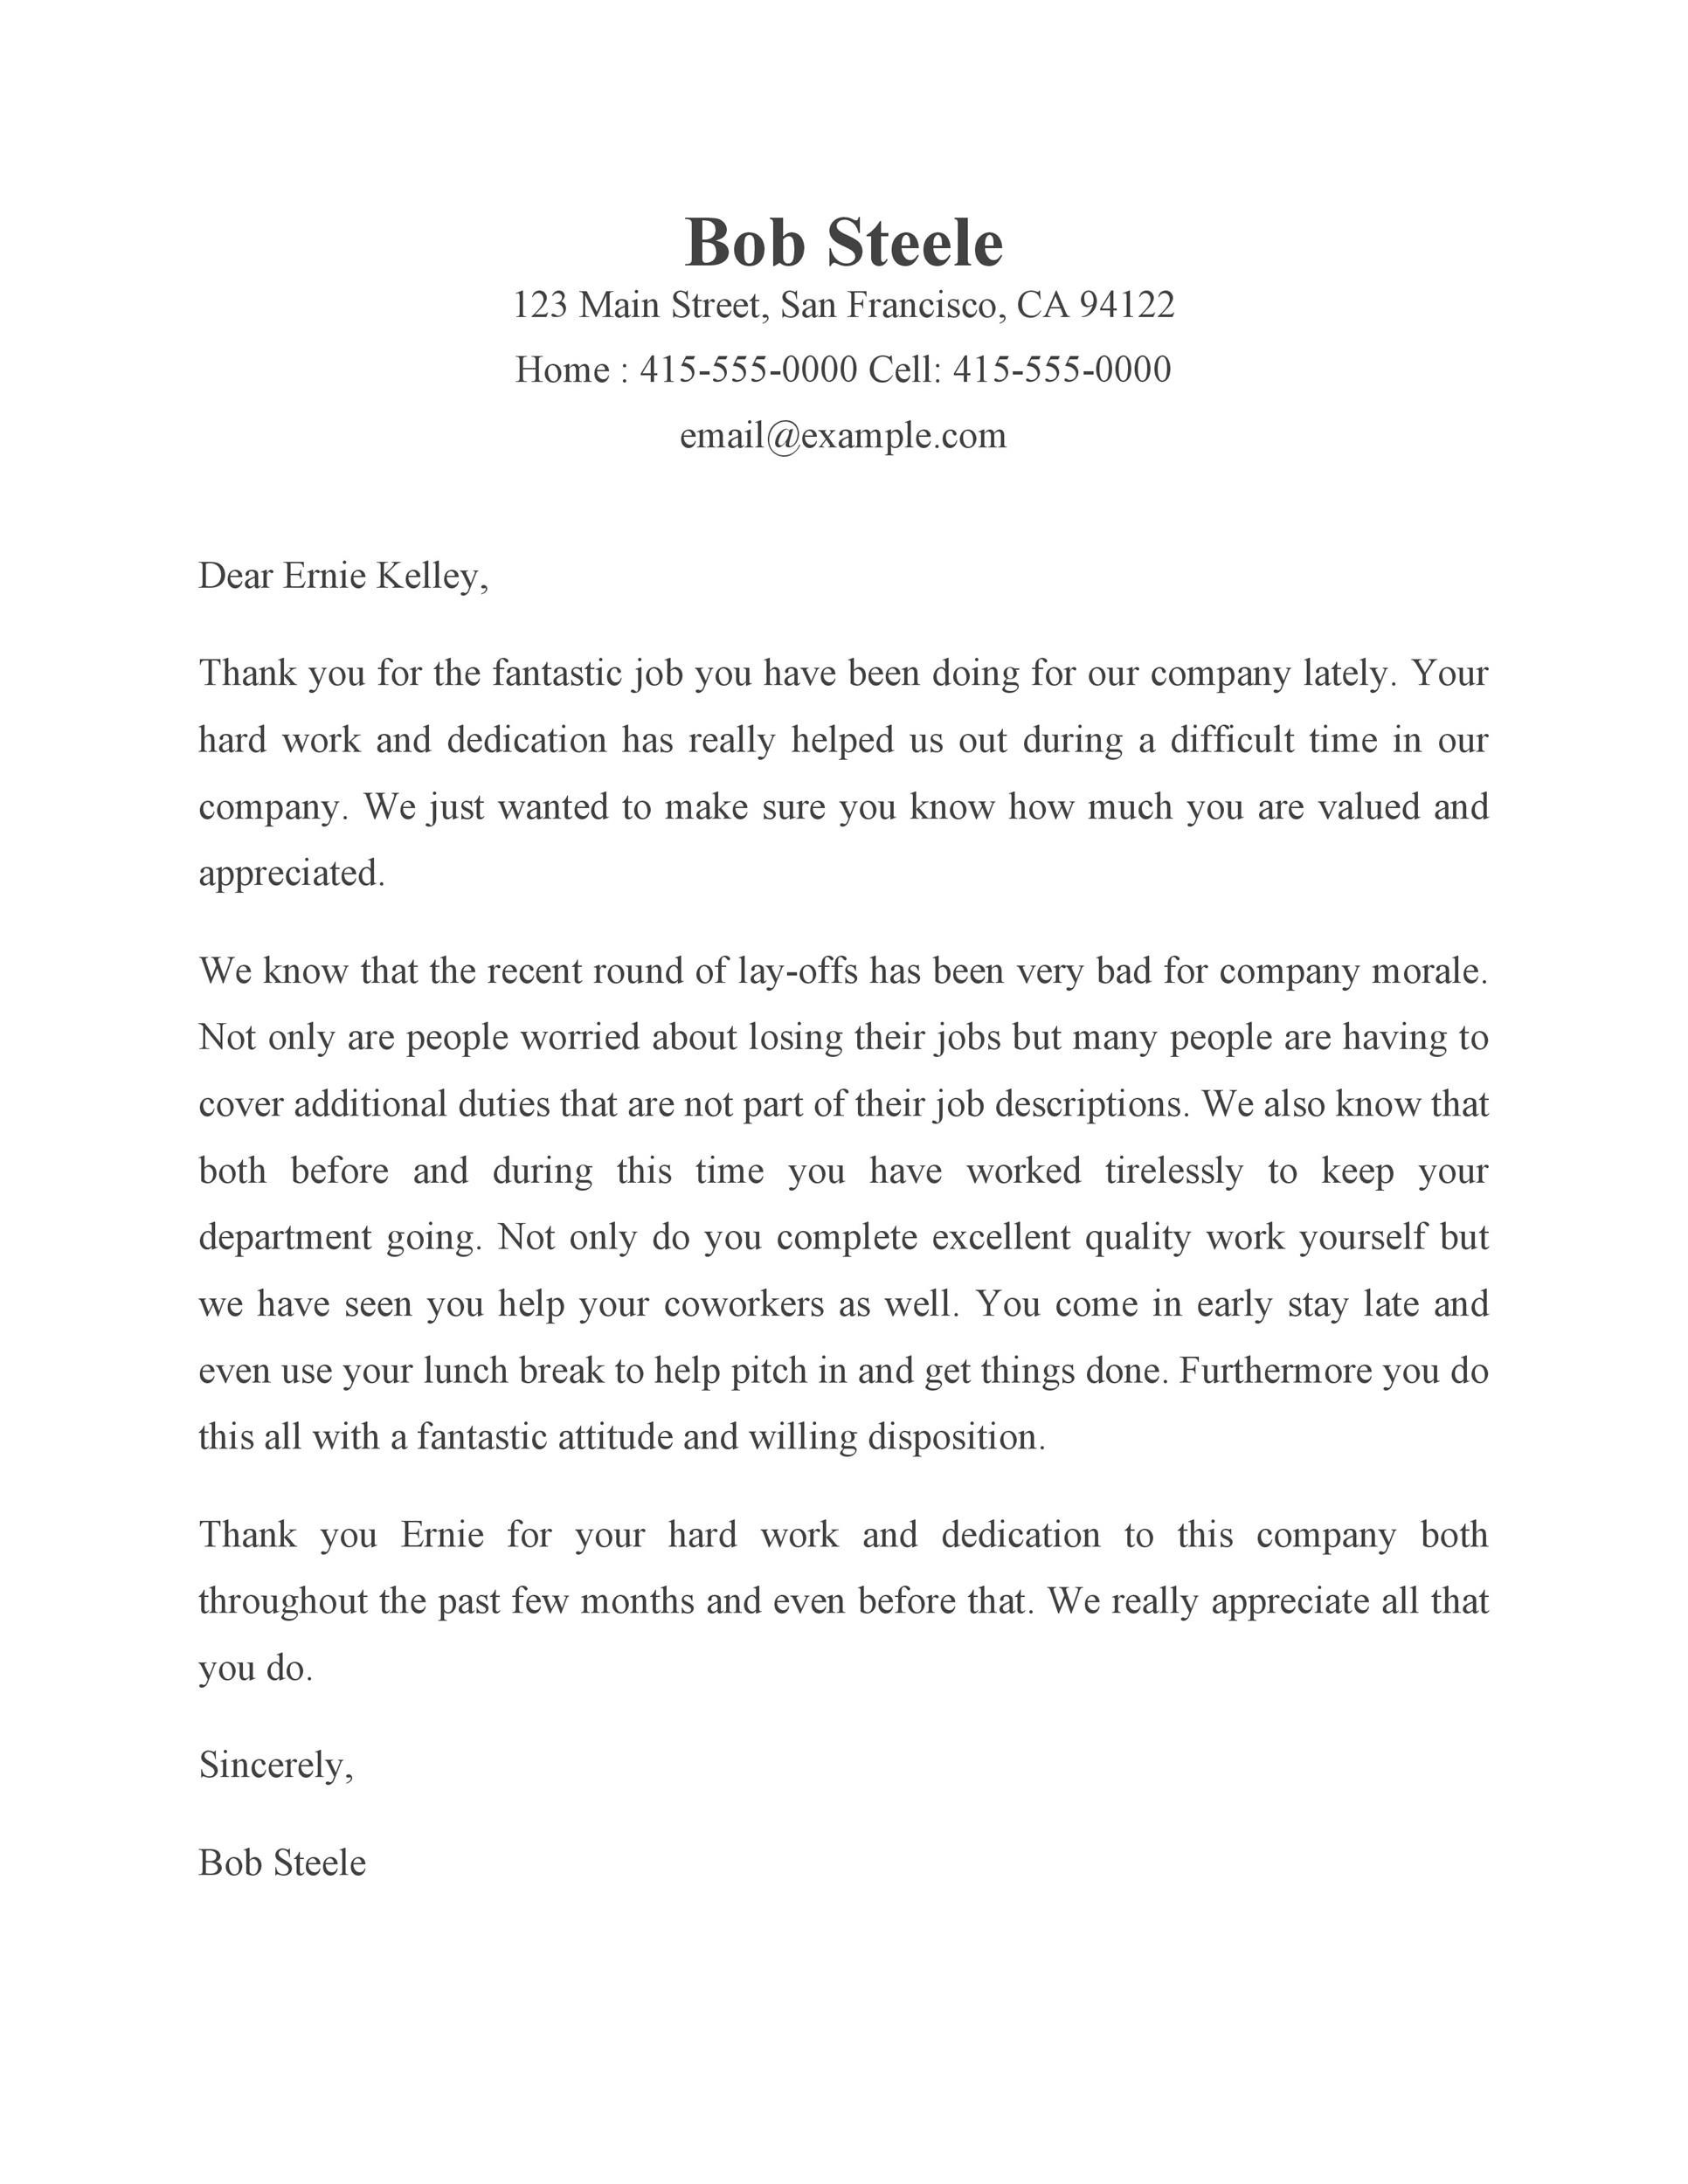 Free recognition letter 29